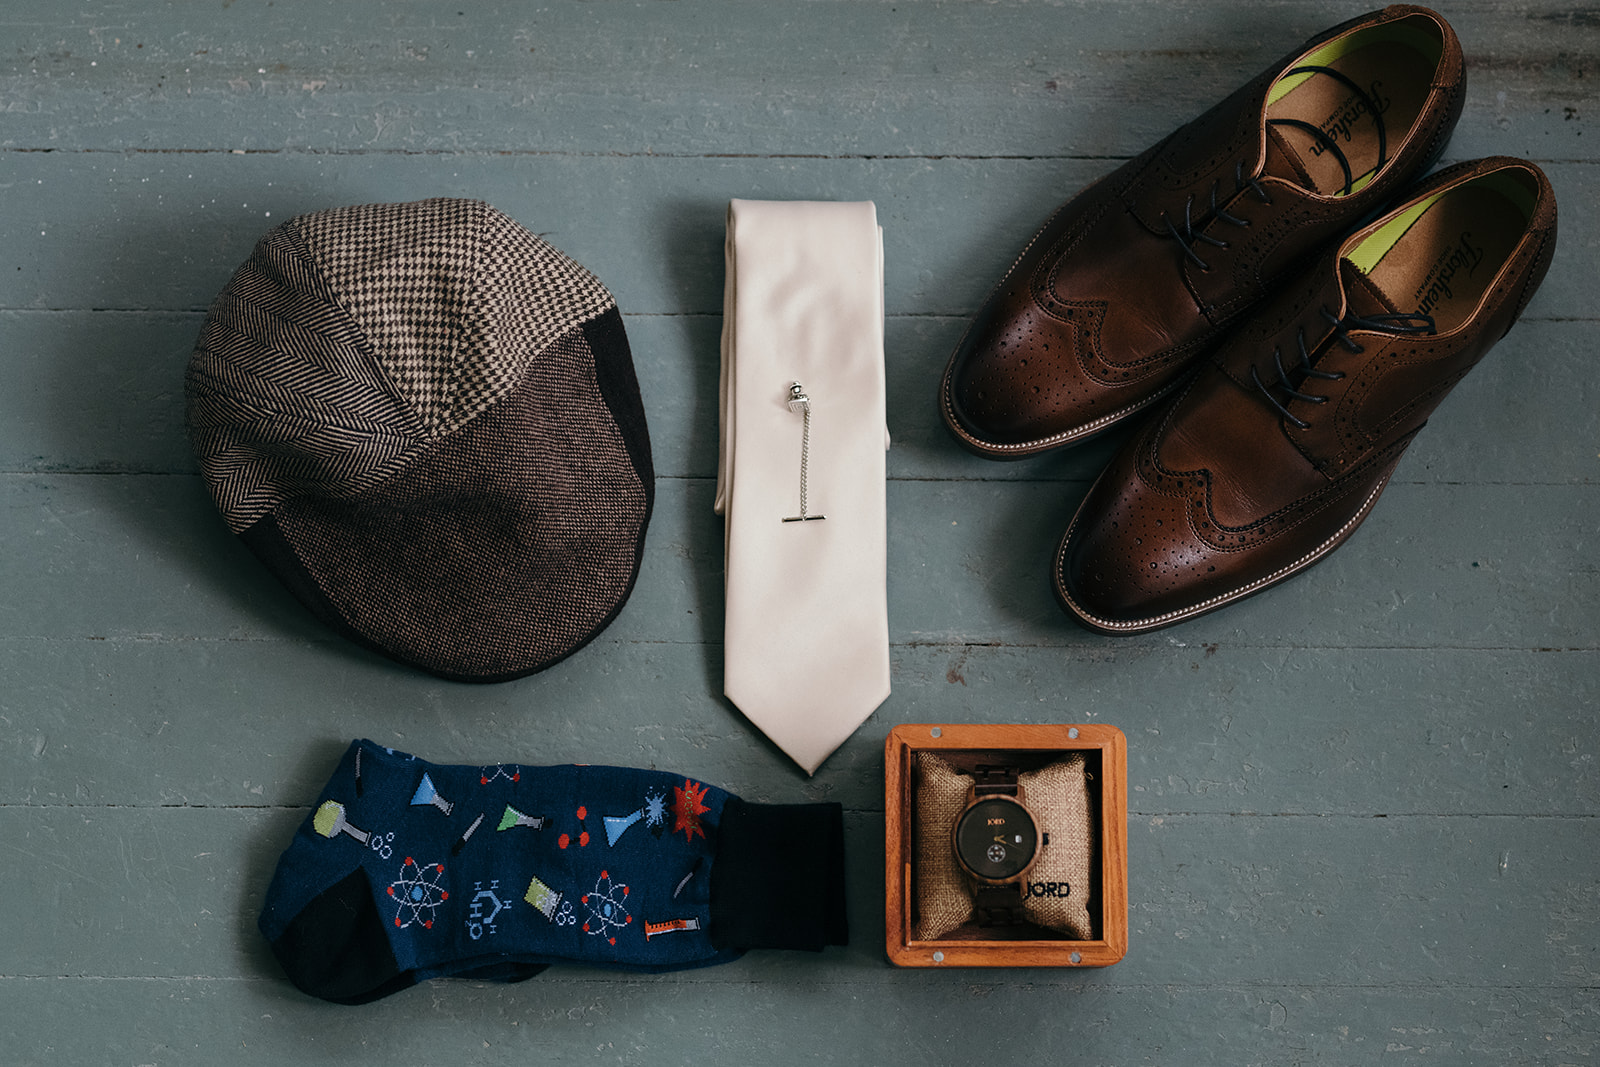 grooms wedding tie shoes watch socks and hat iowa city wedding